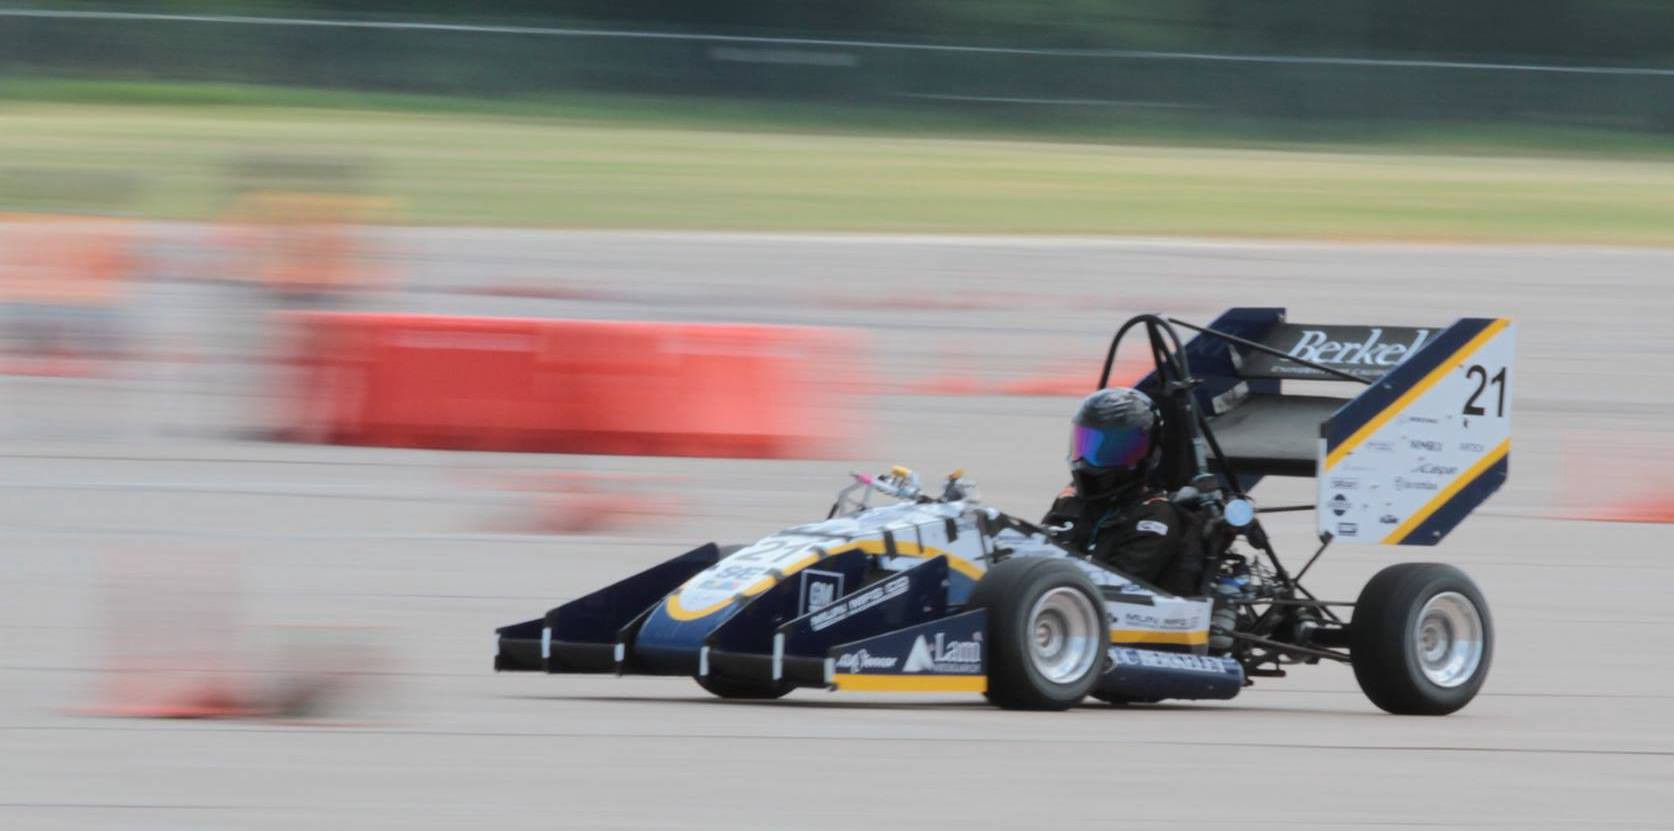 5 Steps to Design a Competition-Winning Racecar (Formula SAE)